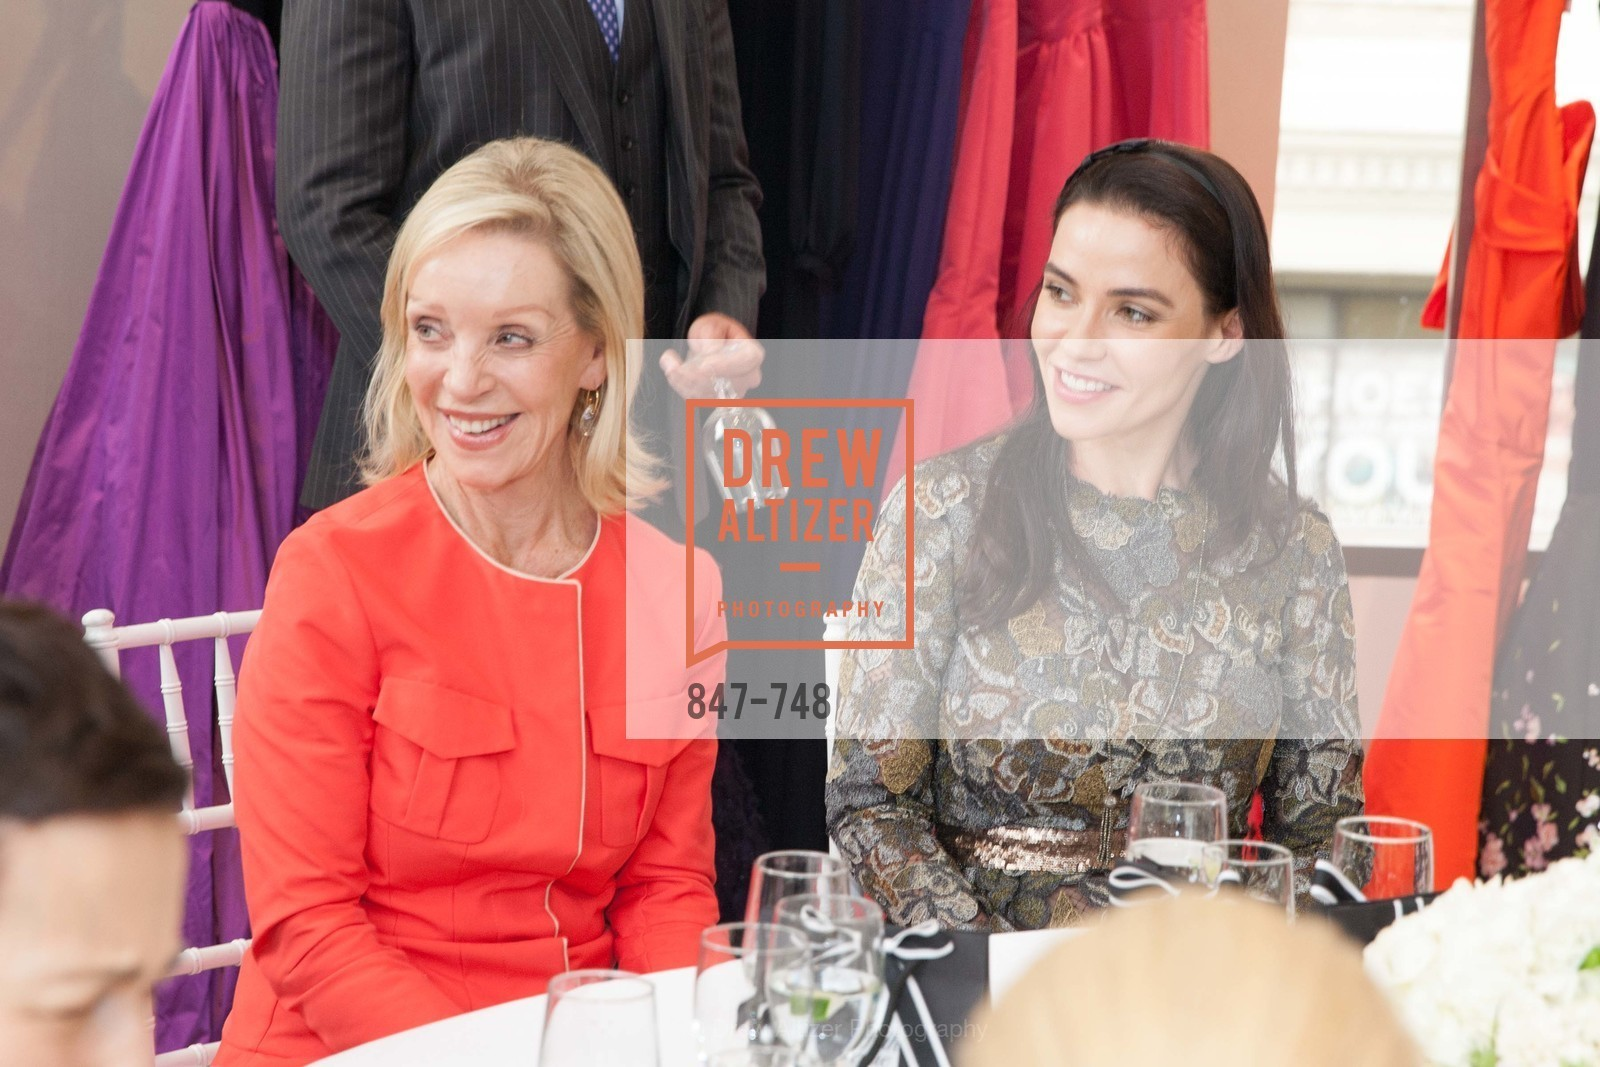 Barbara Brown, Angela Hamby, PETER COPPING'S Personal Appearance at SAKS FIFTH AVENUE, US, May 22nd, 2015,Drew Altizer, Drew Altizer Photography, full-service agency, private events, San Francisco photographer, photographer california